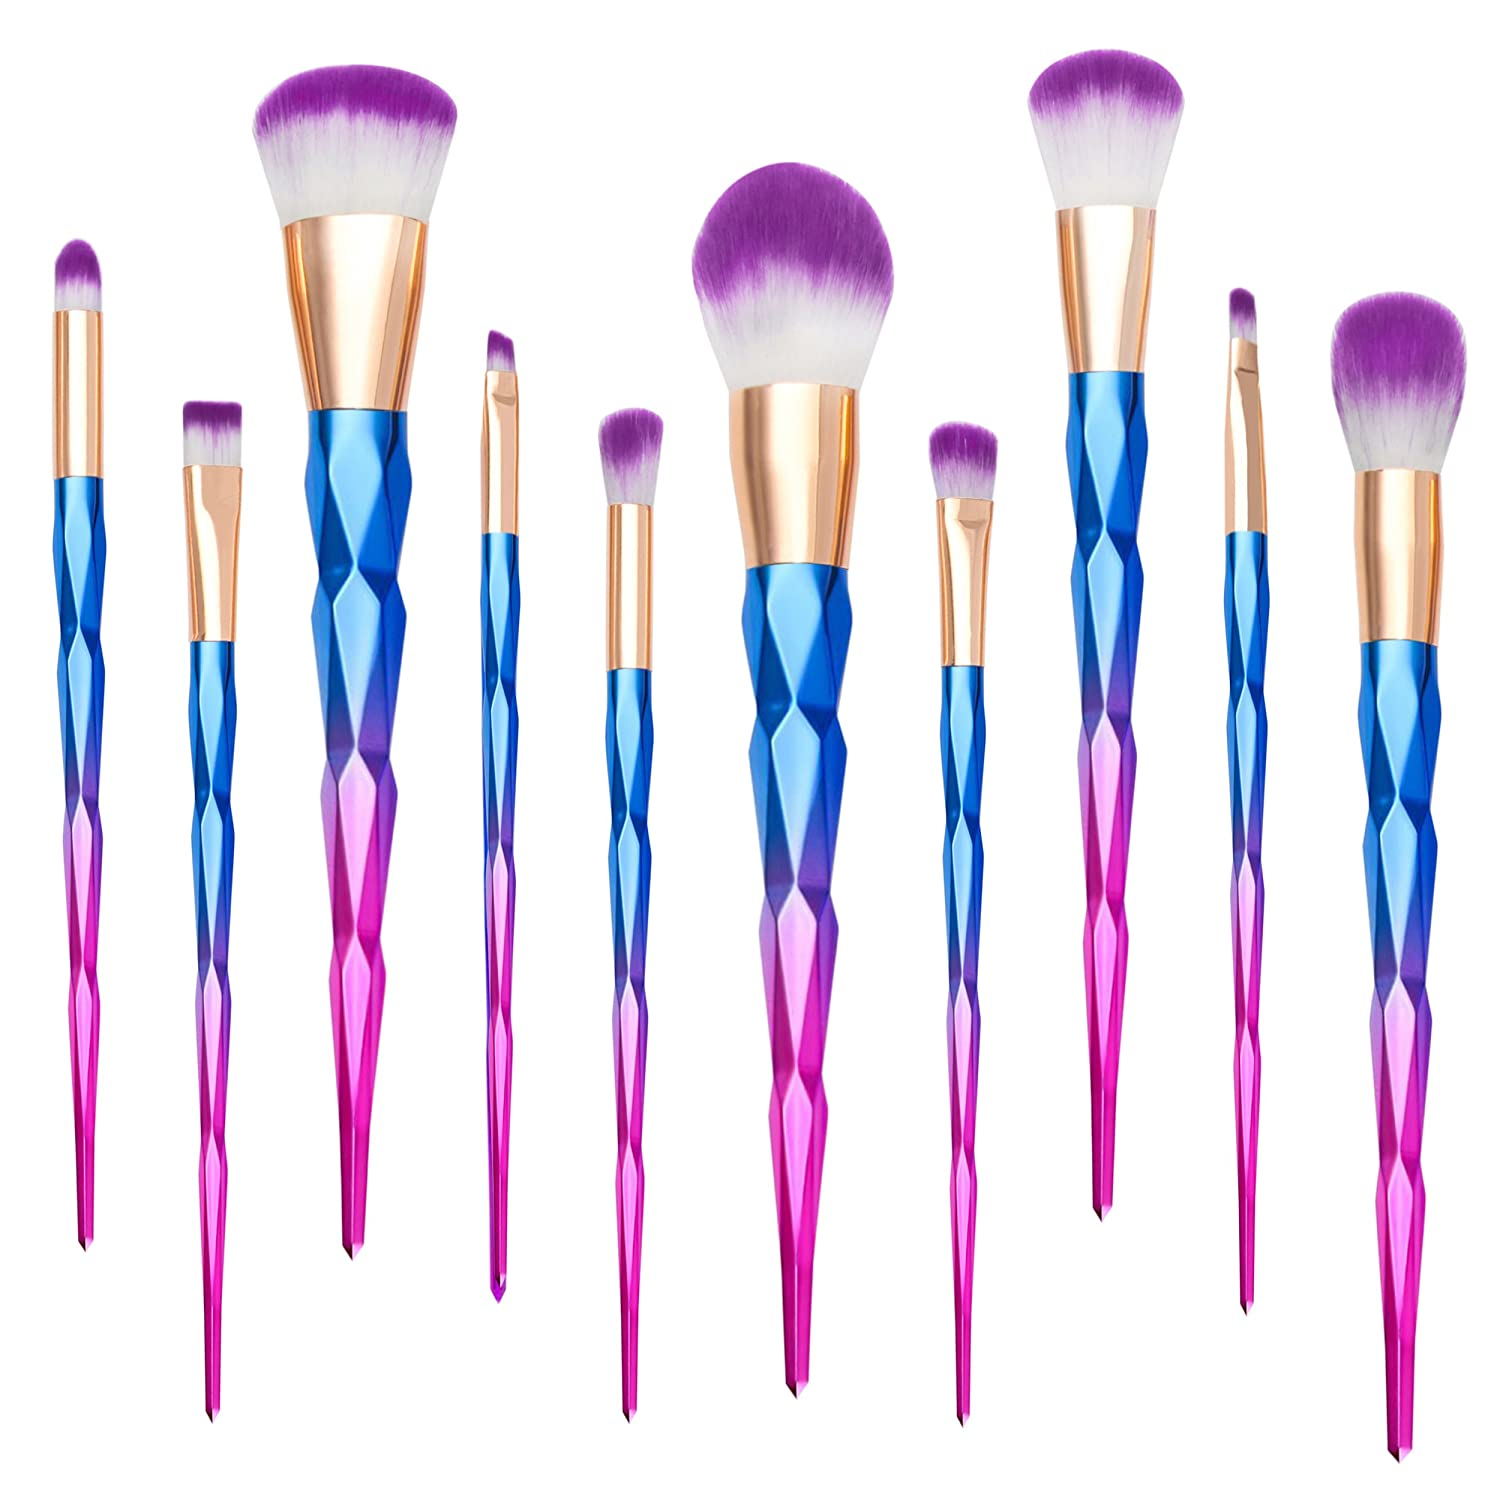 Unicorn Makeup Brushes, Qivange Synthetic Rose Gold Makeup Brushes Foundation Powder Eyeshadow Blending Brushes(10pcs)